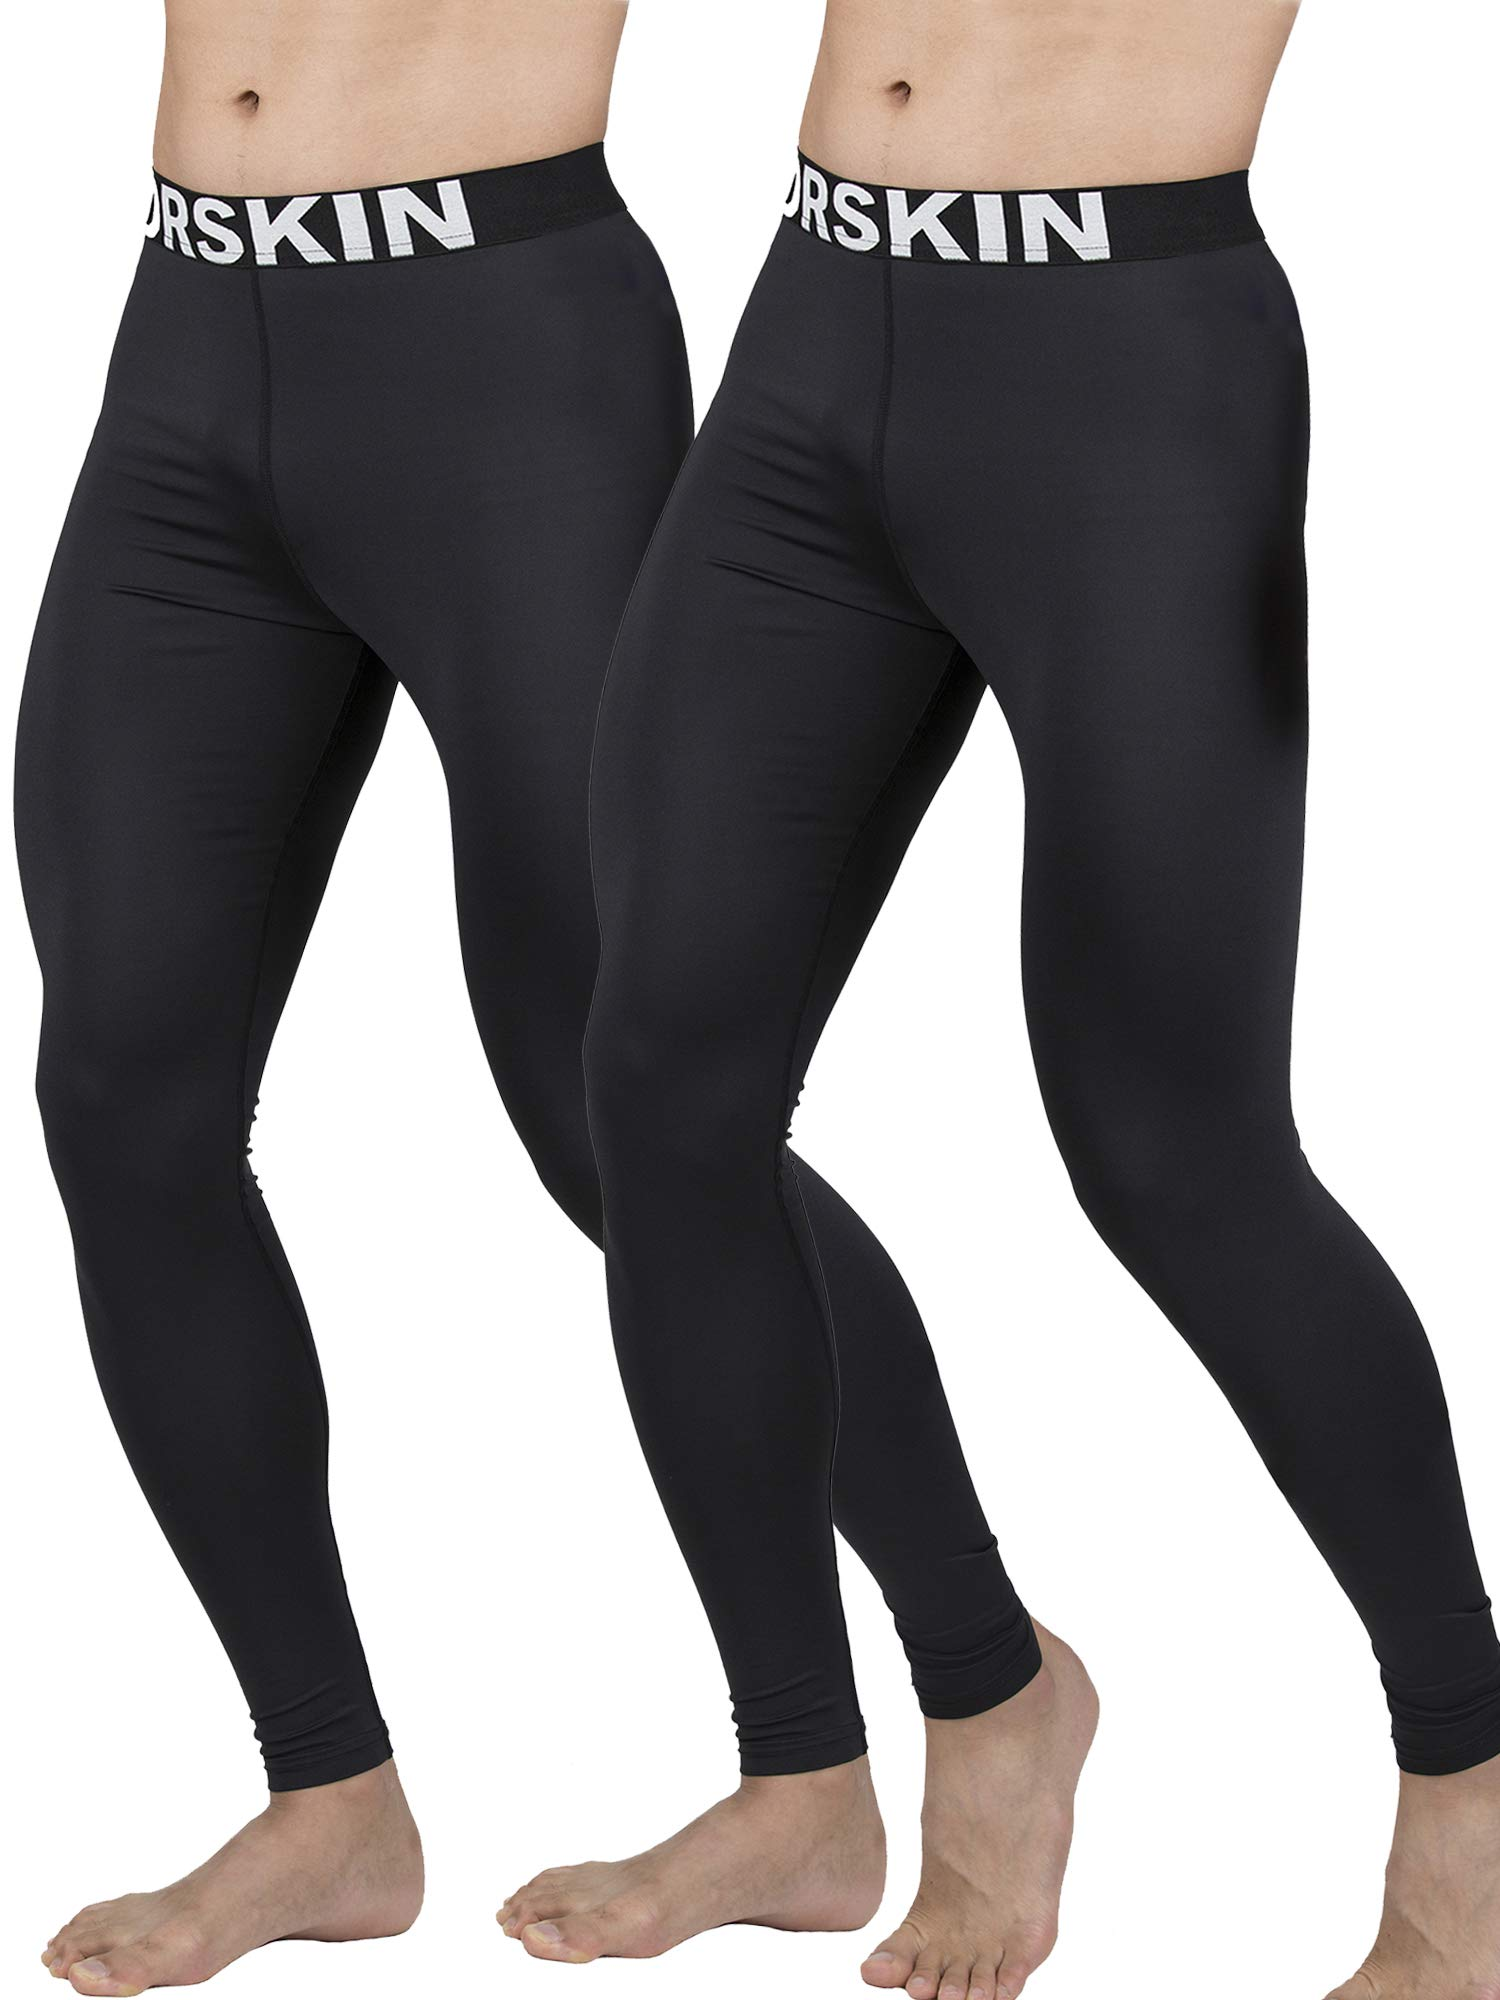 58198a6b22ad7 Galleon - DRSKIN Men's Compression Dry Cool Sports Tights Pants Baselayer  Running Leggings Yoga 3 Pack (Classic B01 2P, 2XL)